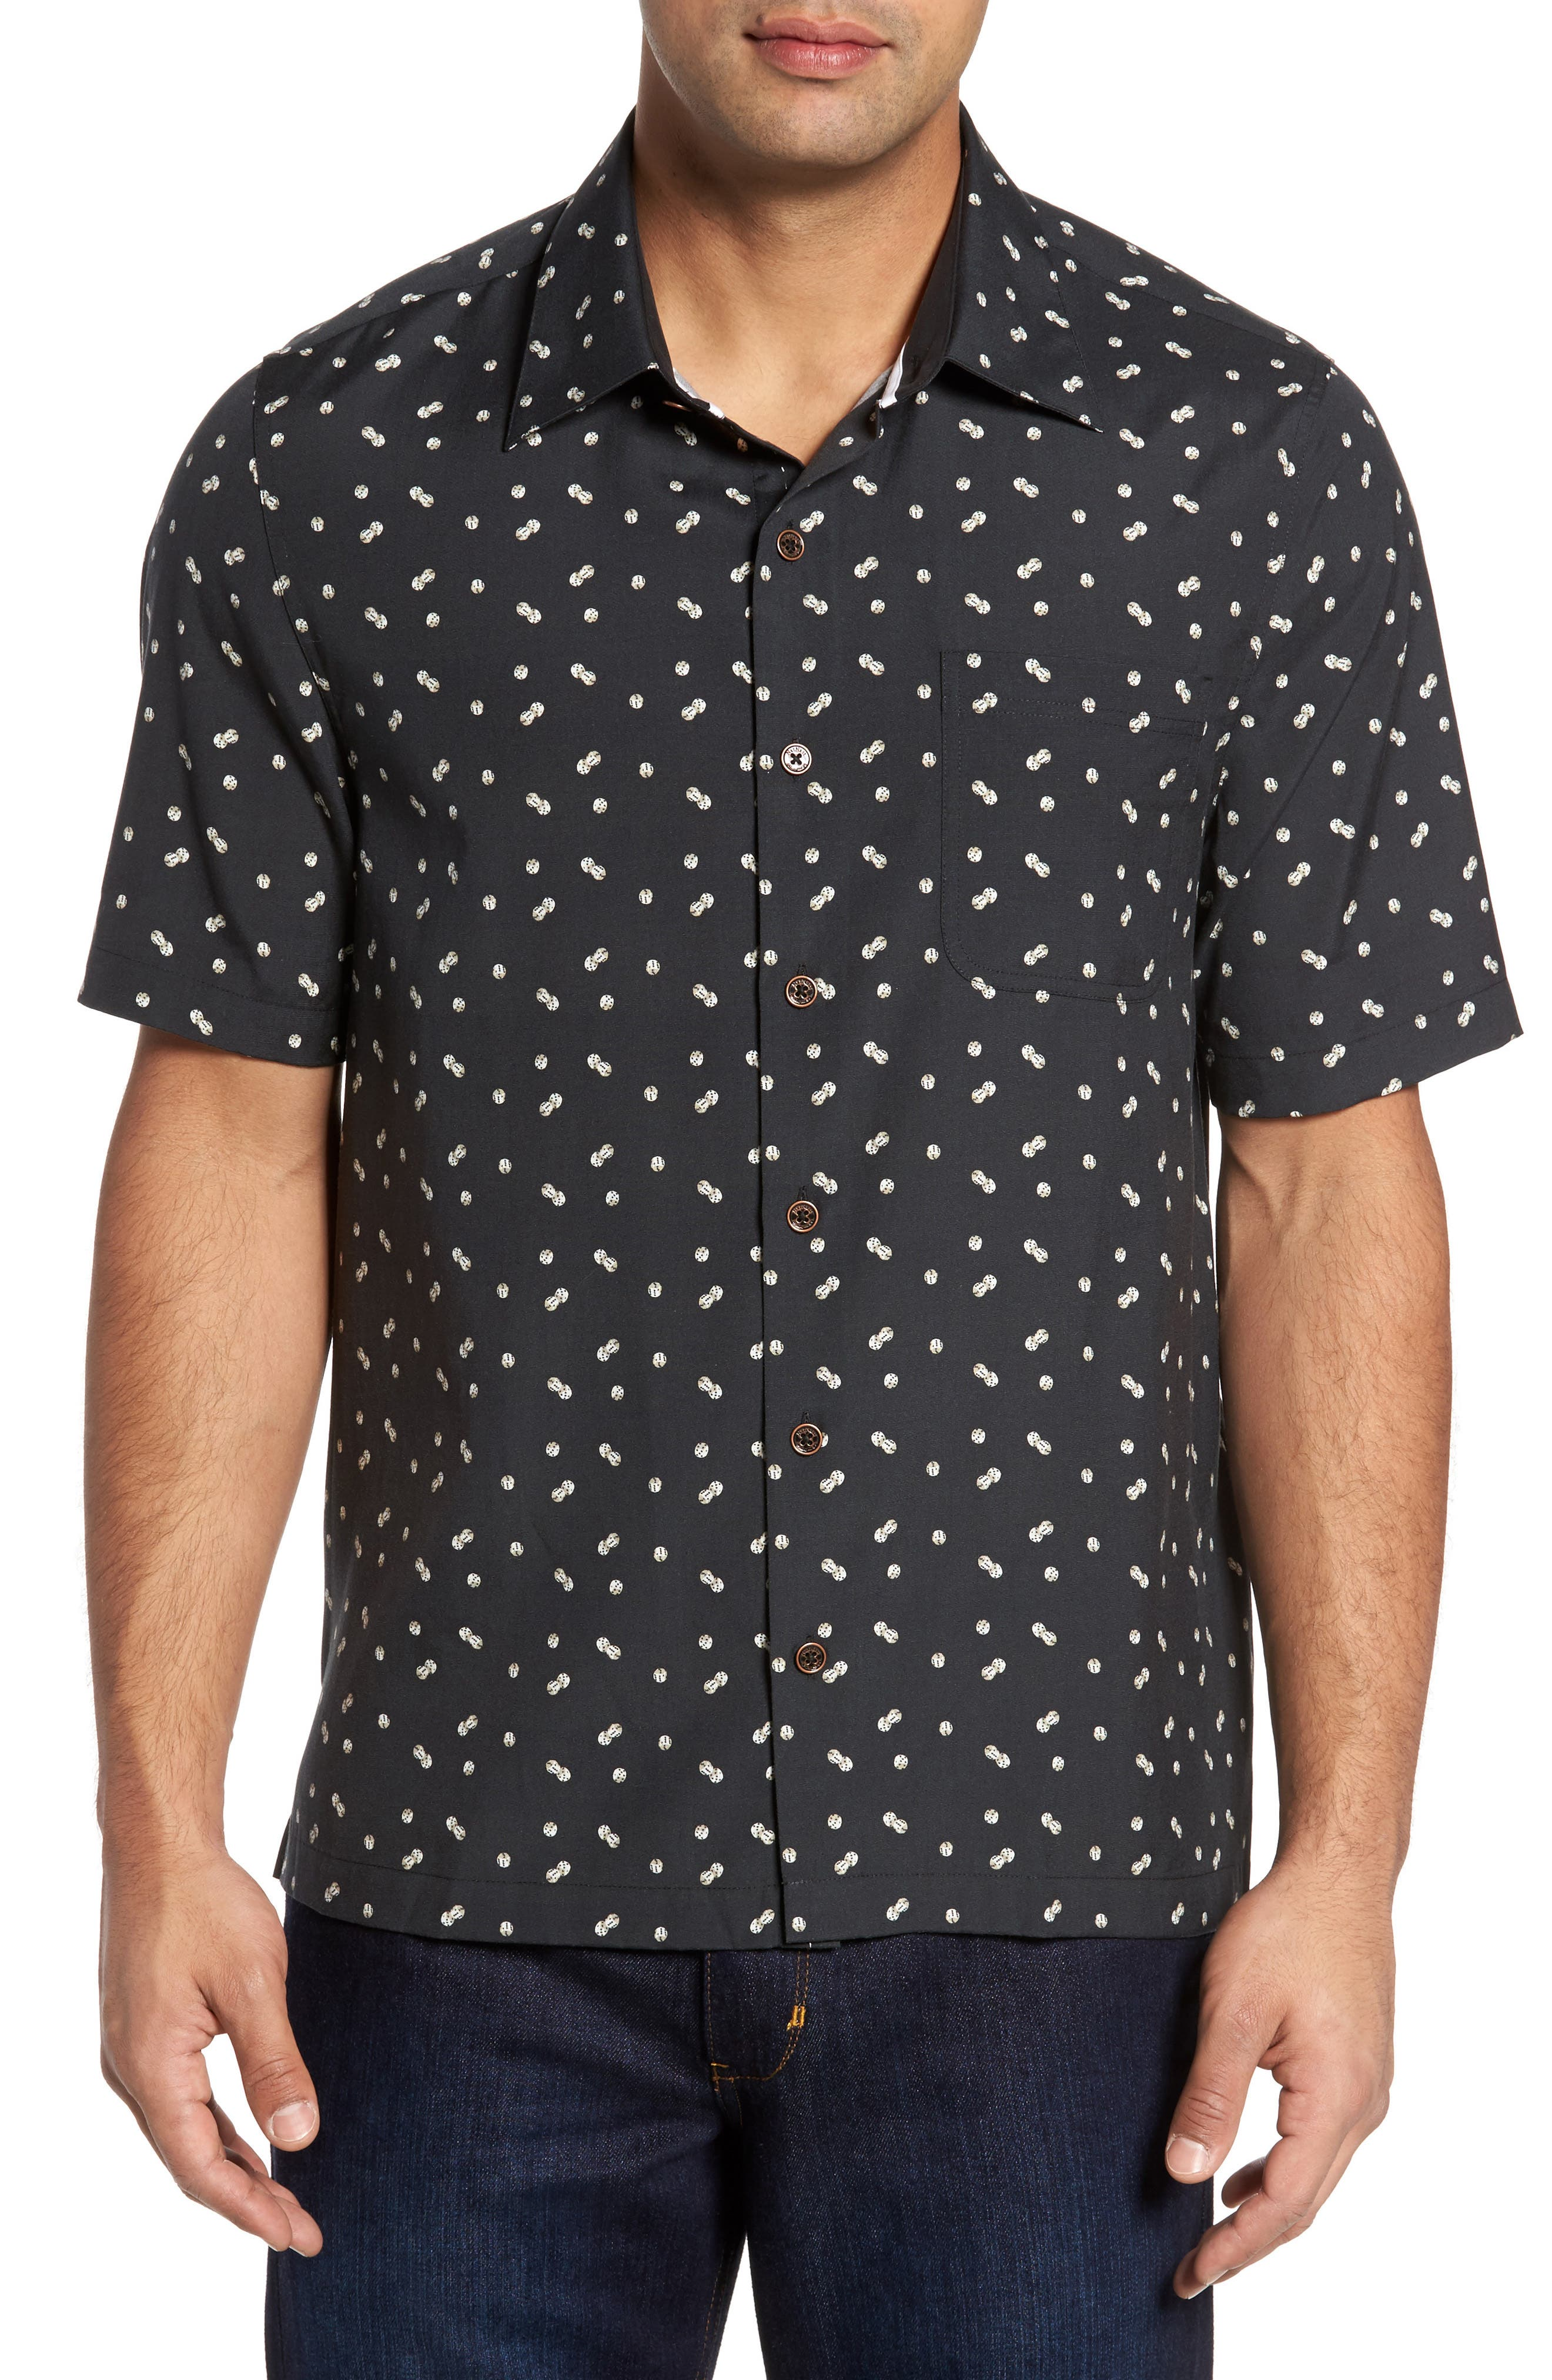 Dice Print Classic Fit Camp Shirt,                         Main,                         color, Black